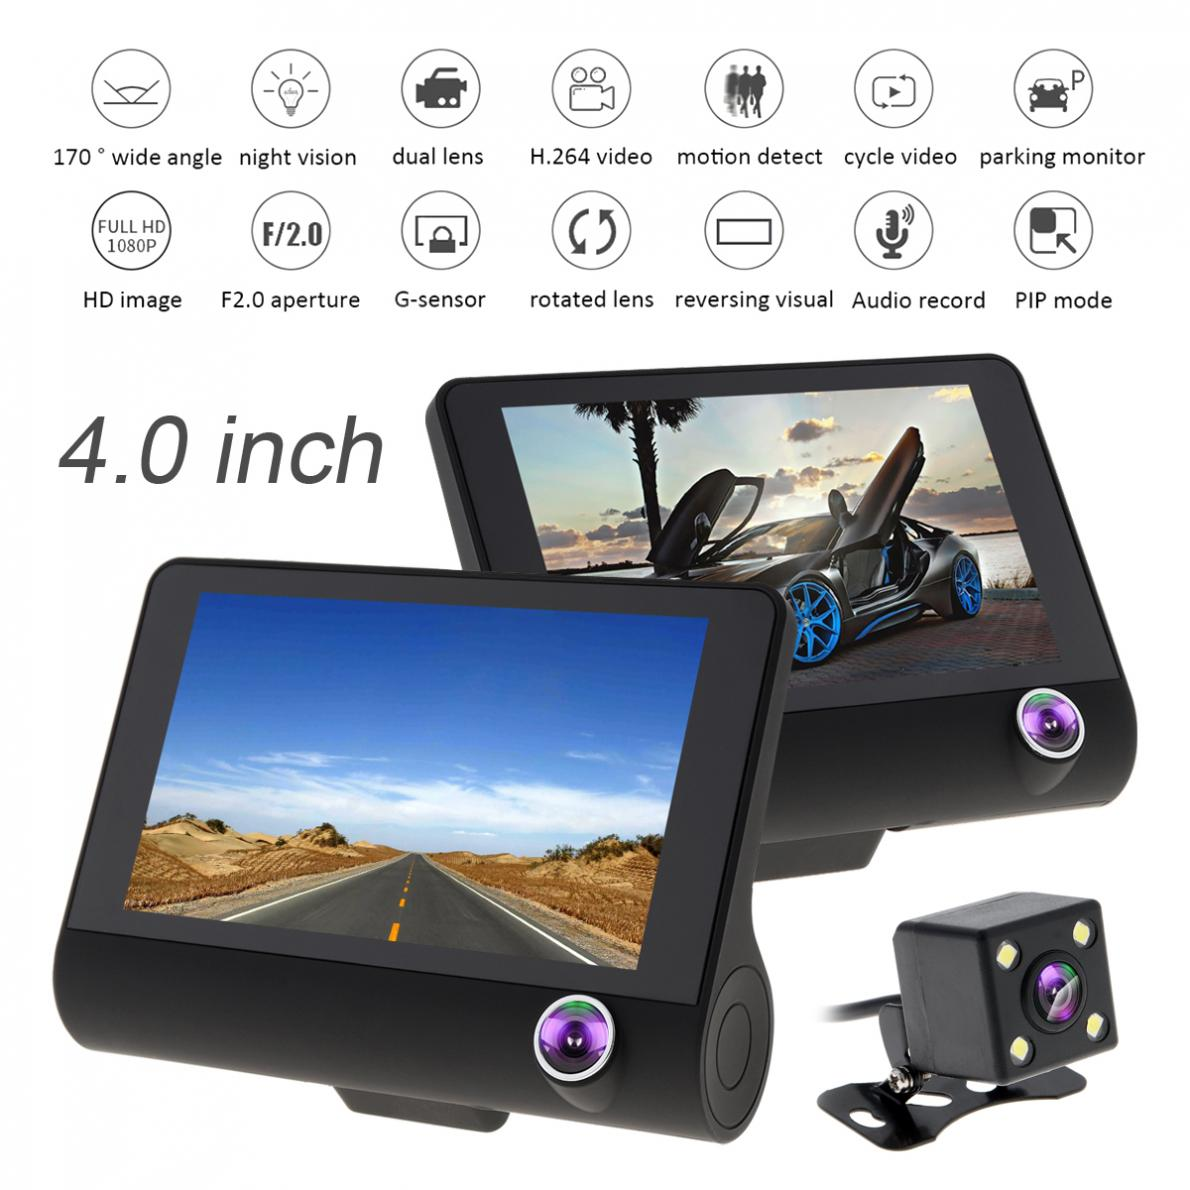 4.0 Inch IPS Screen Full HD 1080P 3-CH Car Recorder DVR Dash Camera G-Sensor Cyclic Recording with Night Vision Rear View Camera car mp5 player bluetooth hd 2 din 7 inch touch screen with gps navigation rear view camera auto fm radio autoradio ios